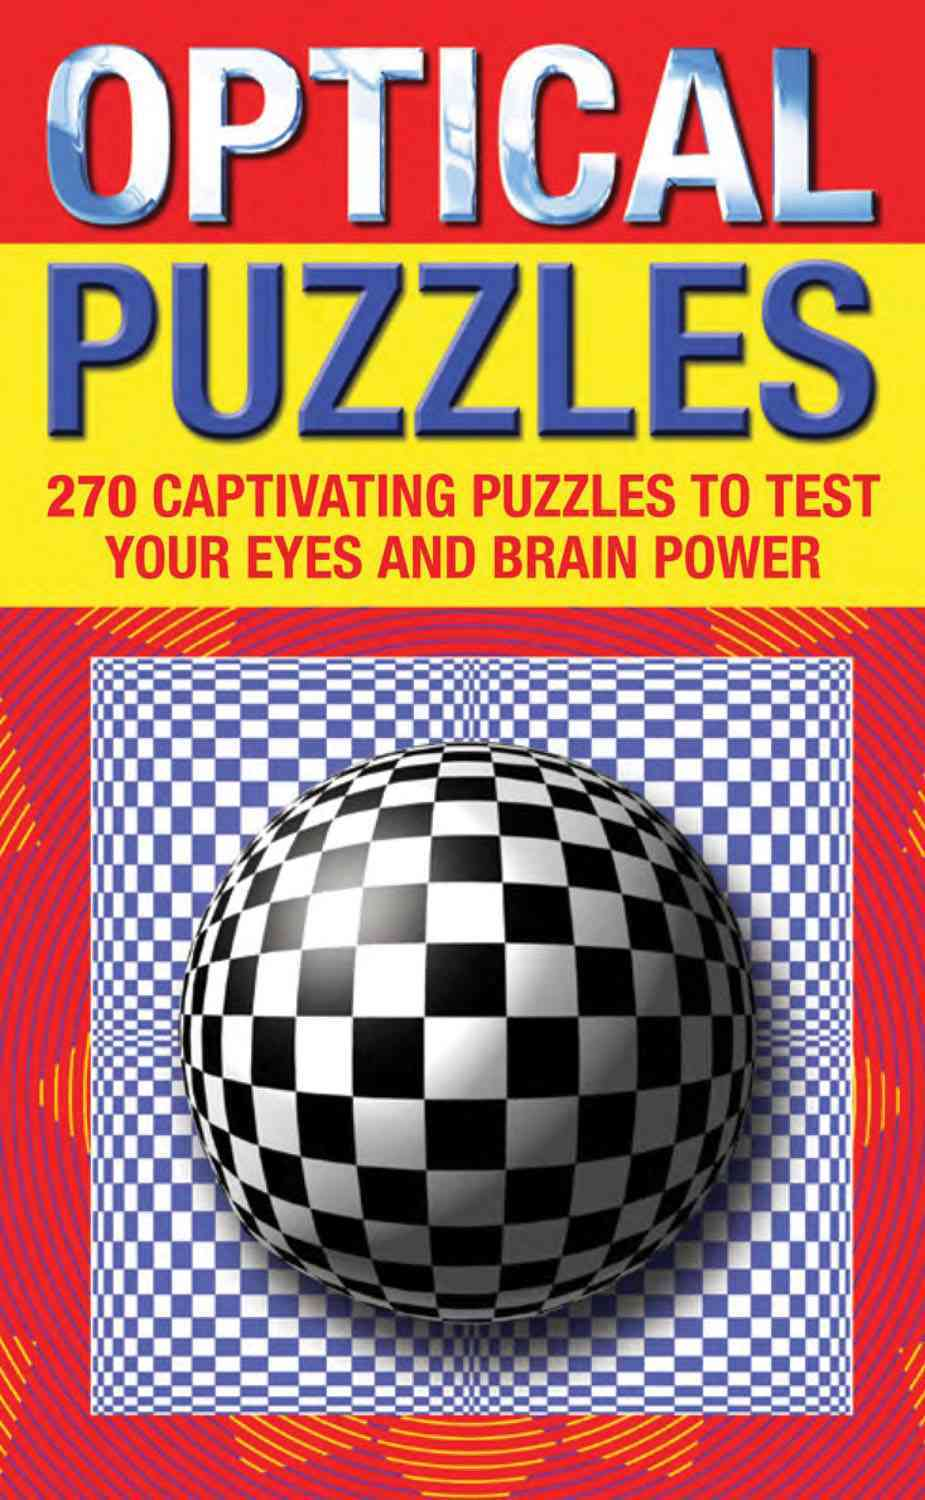 Optical Puzzles By Sarcone, Gianni